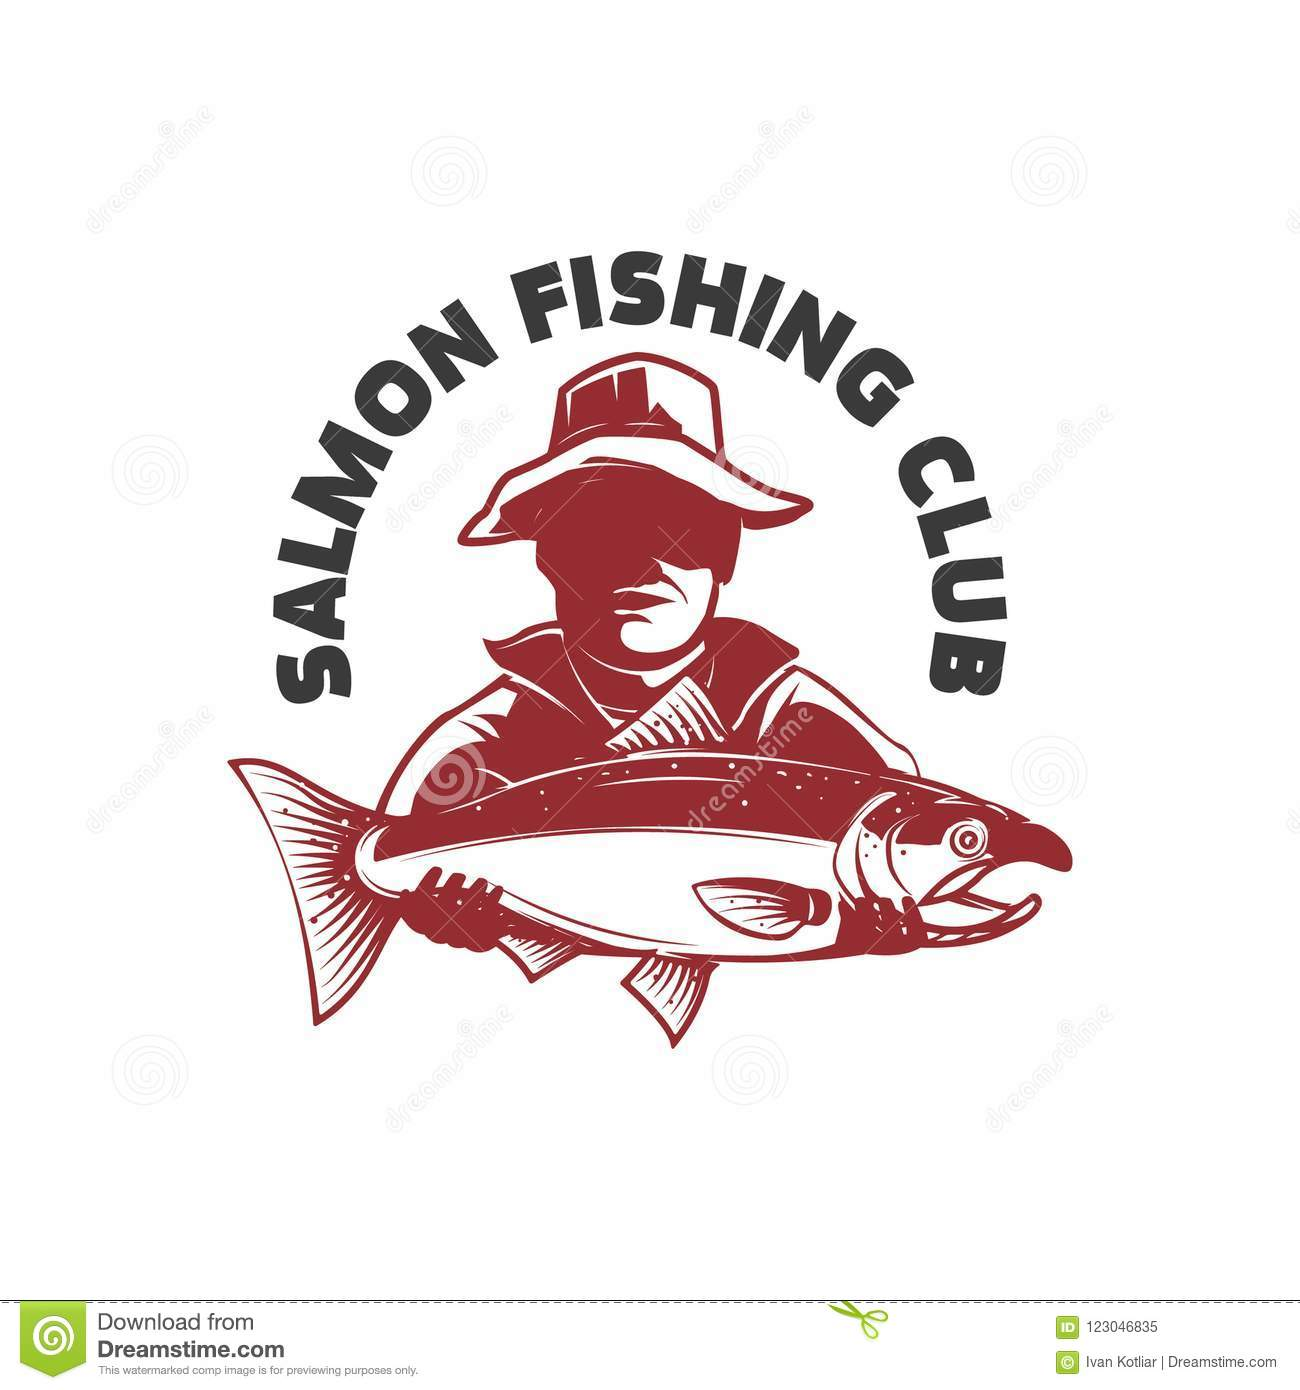 Salmon fishing club. Emblem with fisher and trout. Design element for logo, label, sign.